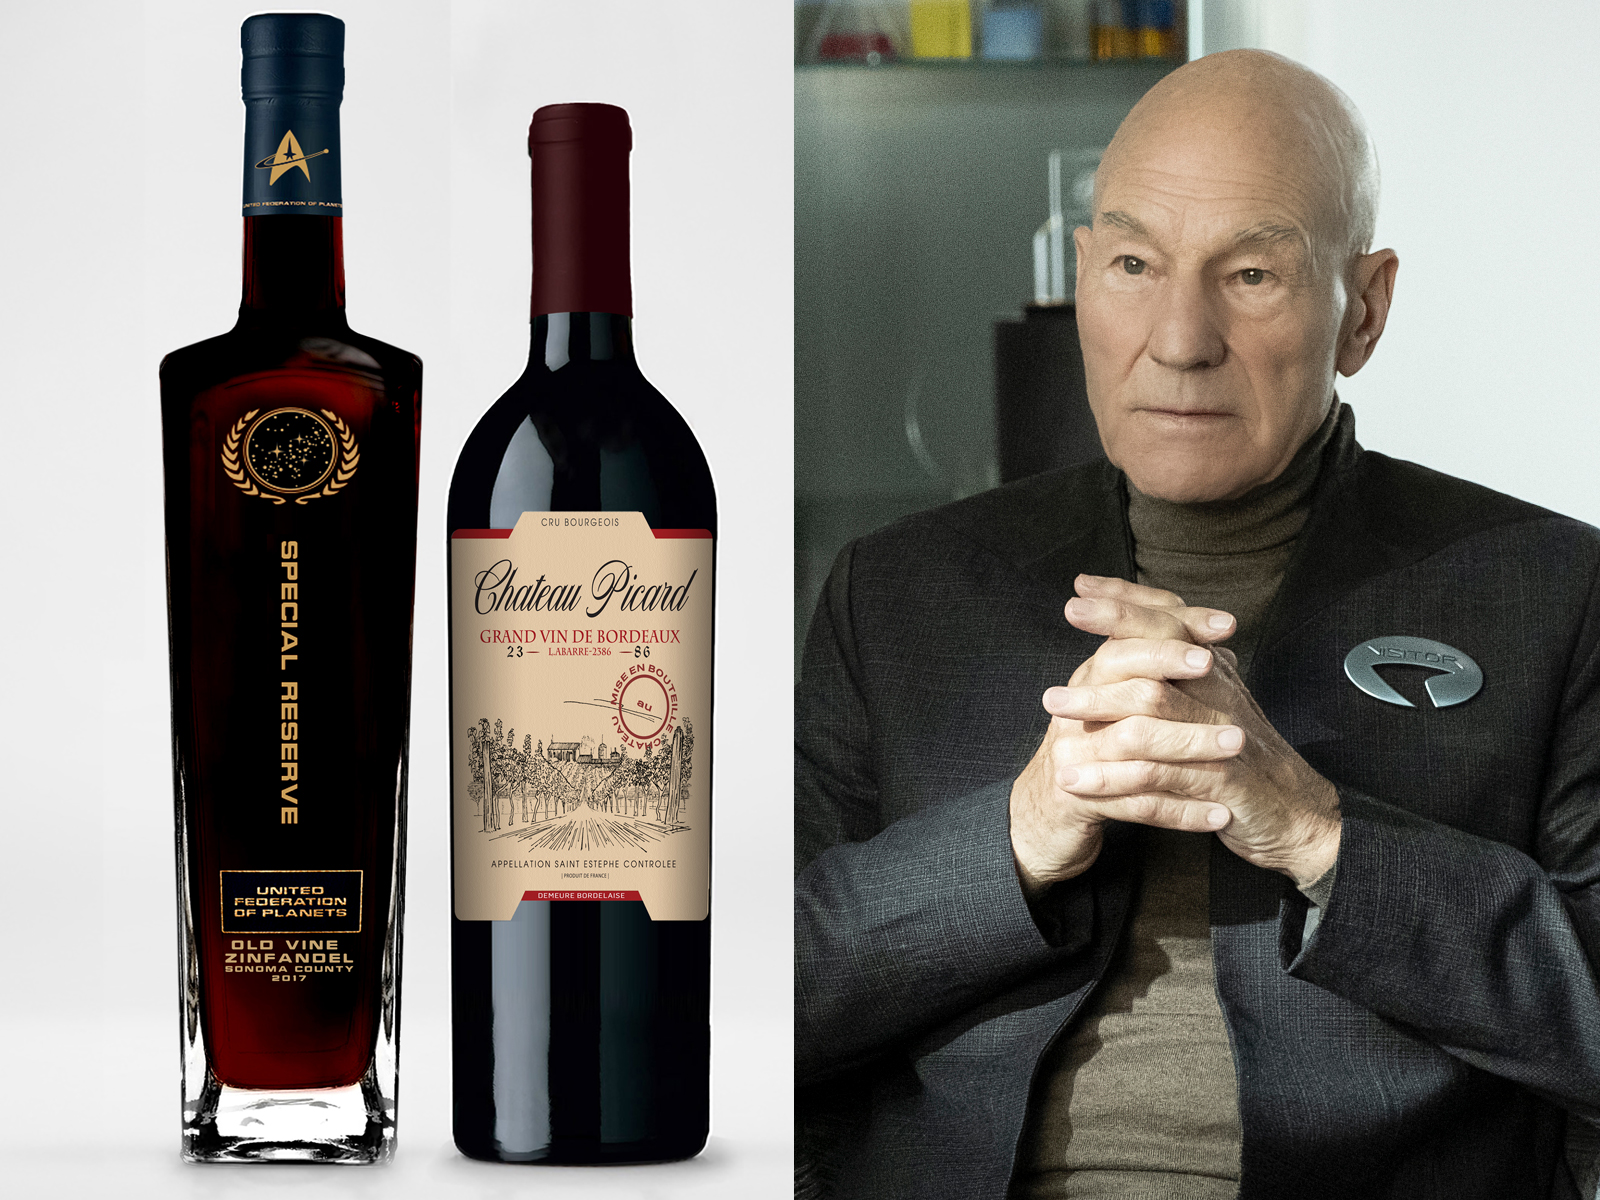 This 'Star Trek' Wine Was Produced at the Actual Chateau Picard in France